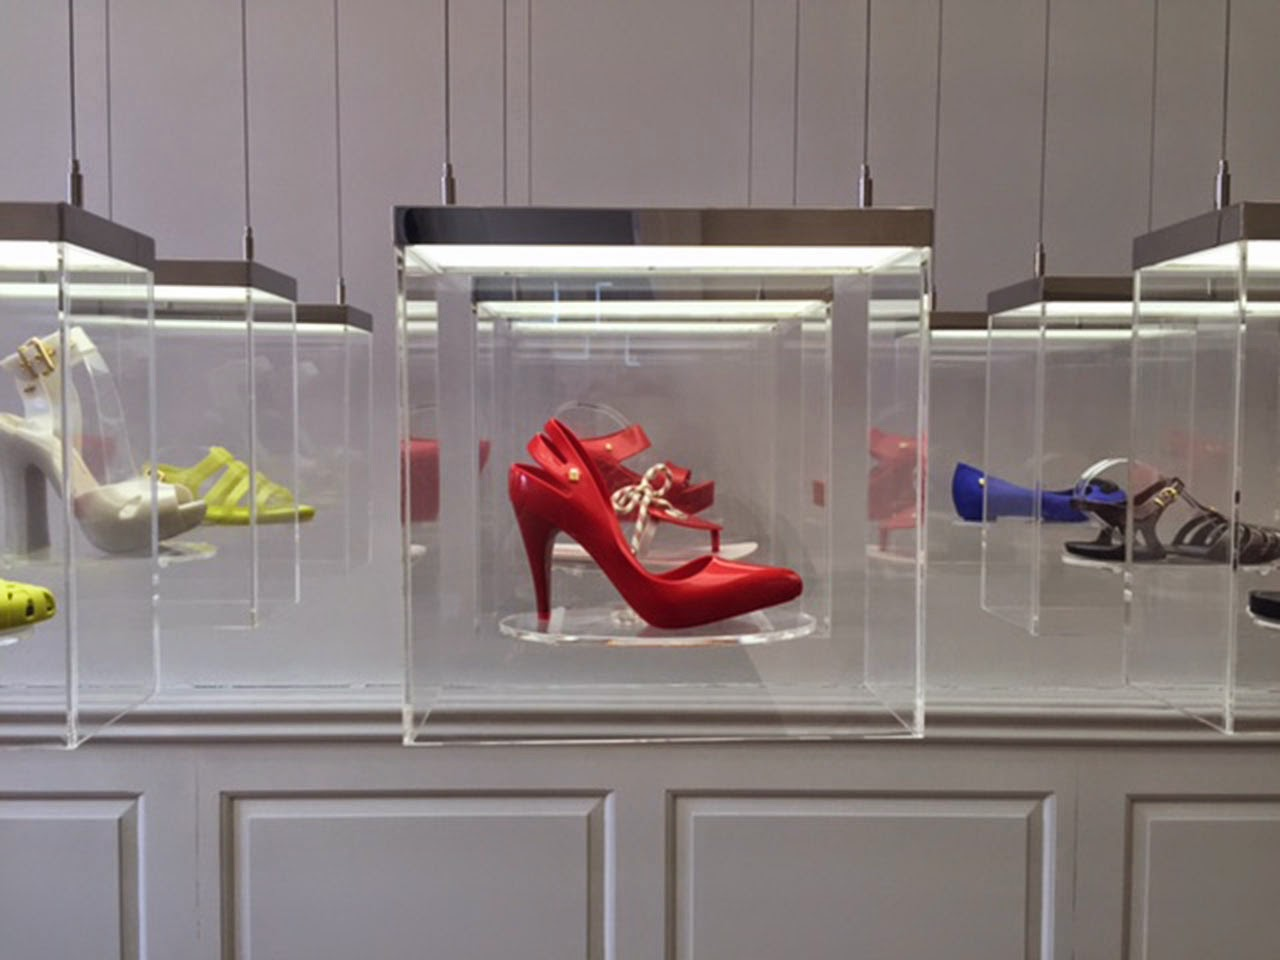 Trendvm Melissa Shoes Collaboration With Gareth Pugh London